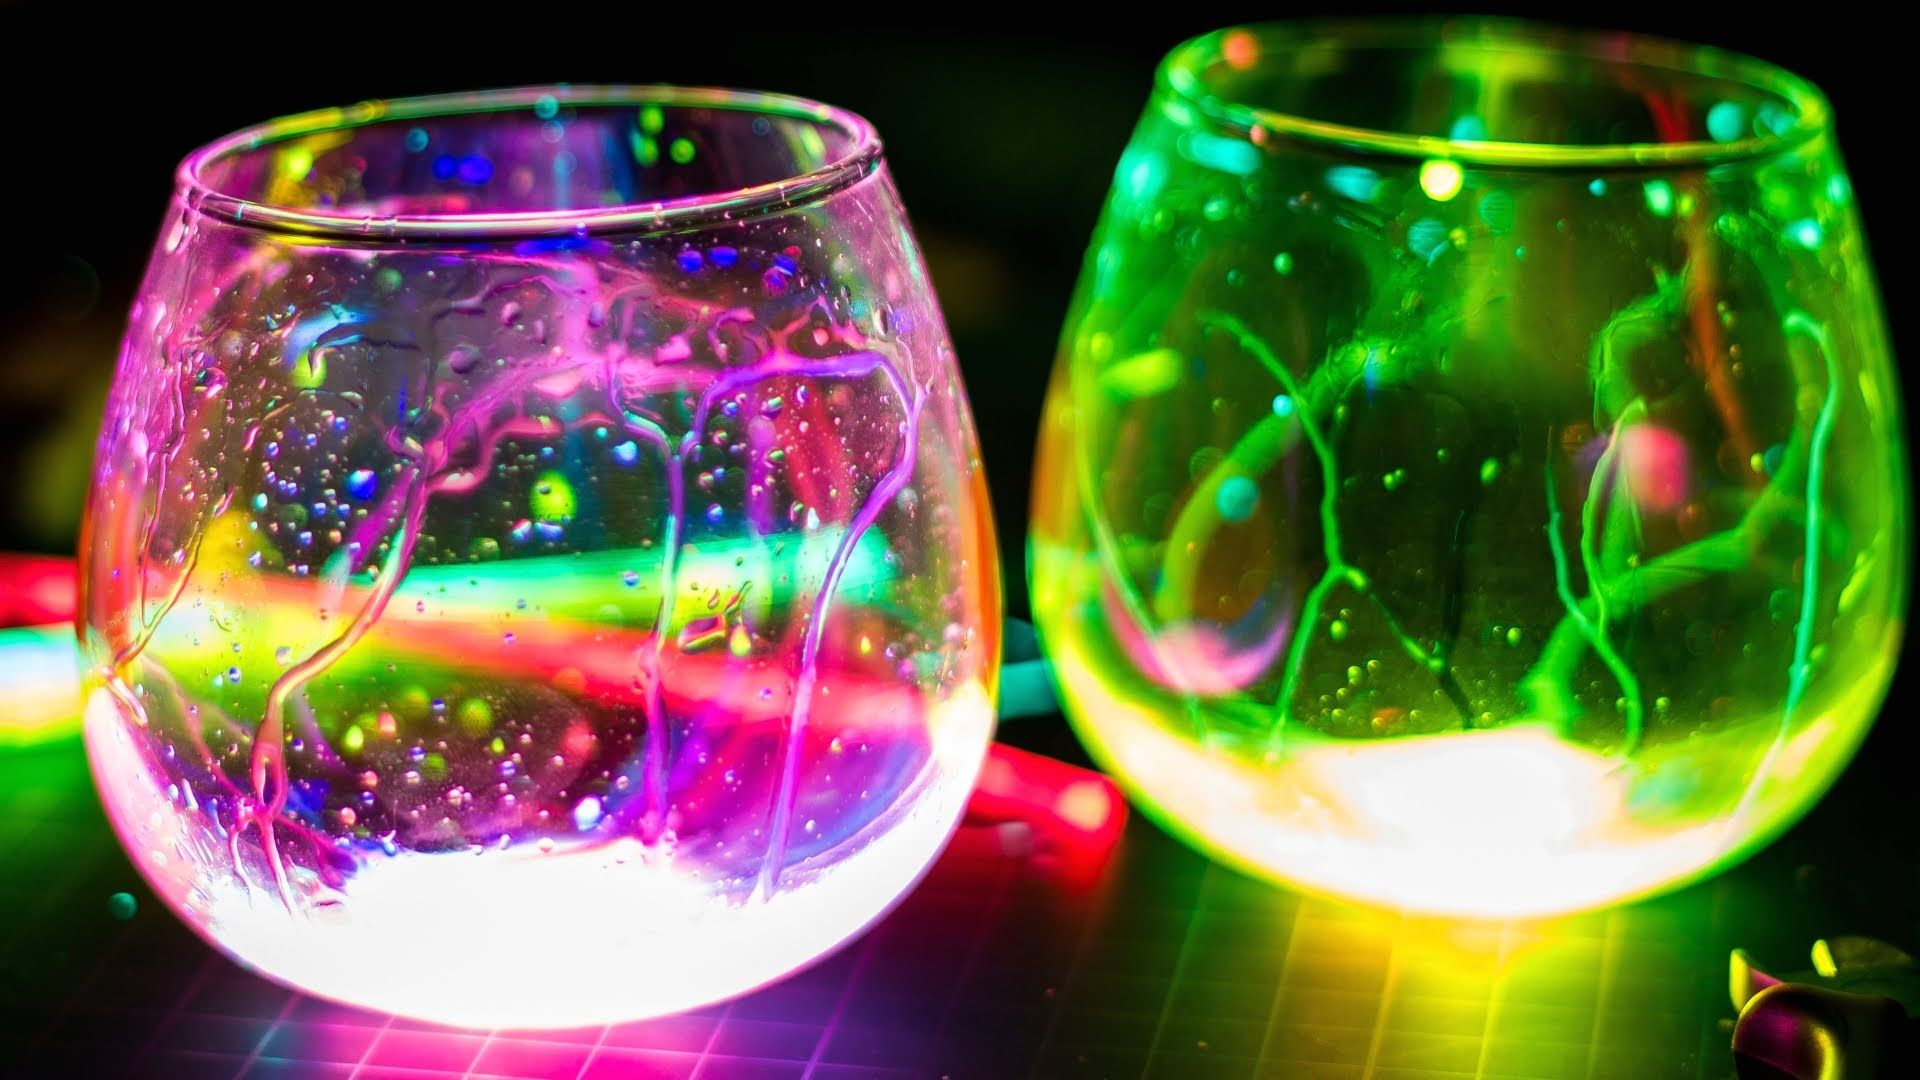 10 Magic And Very Cool Science Experiments You Can Do At Home With The Whole Family Amazing To Entertain Your Kids